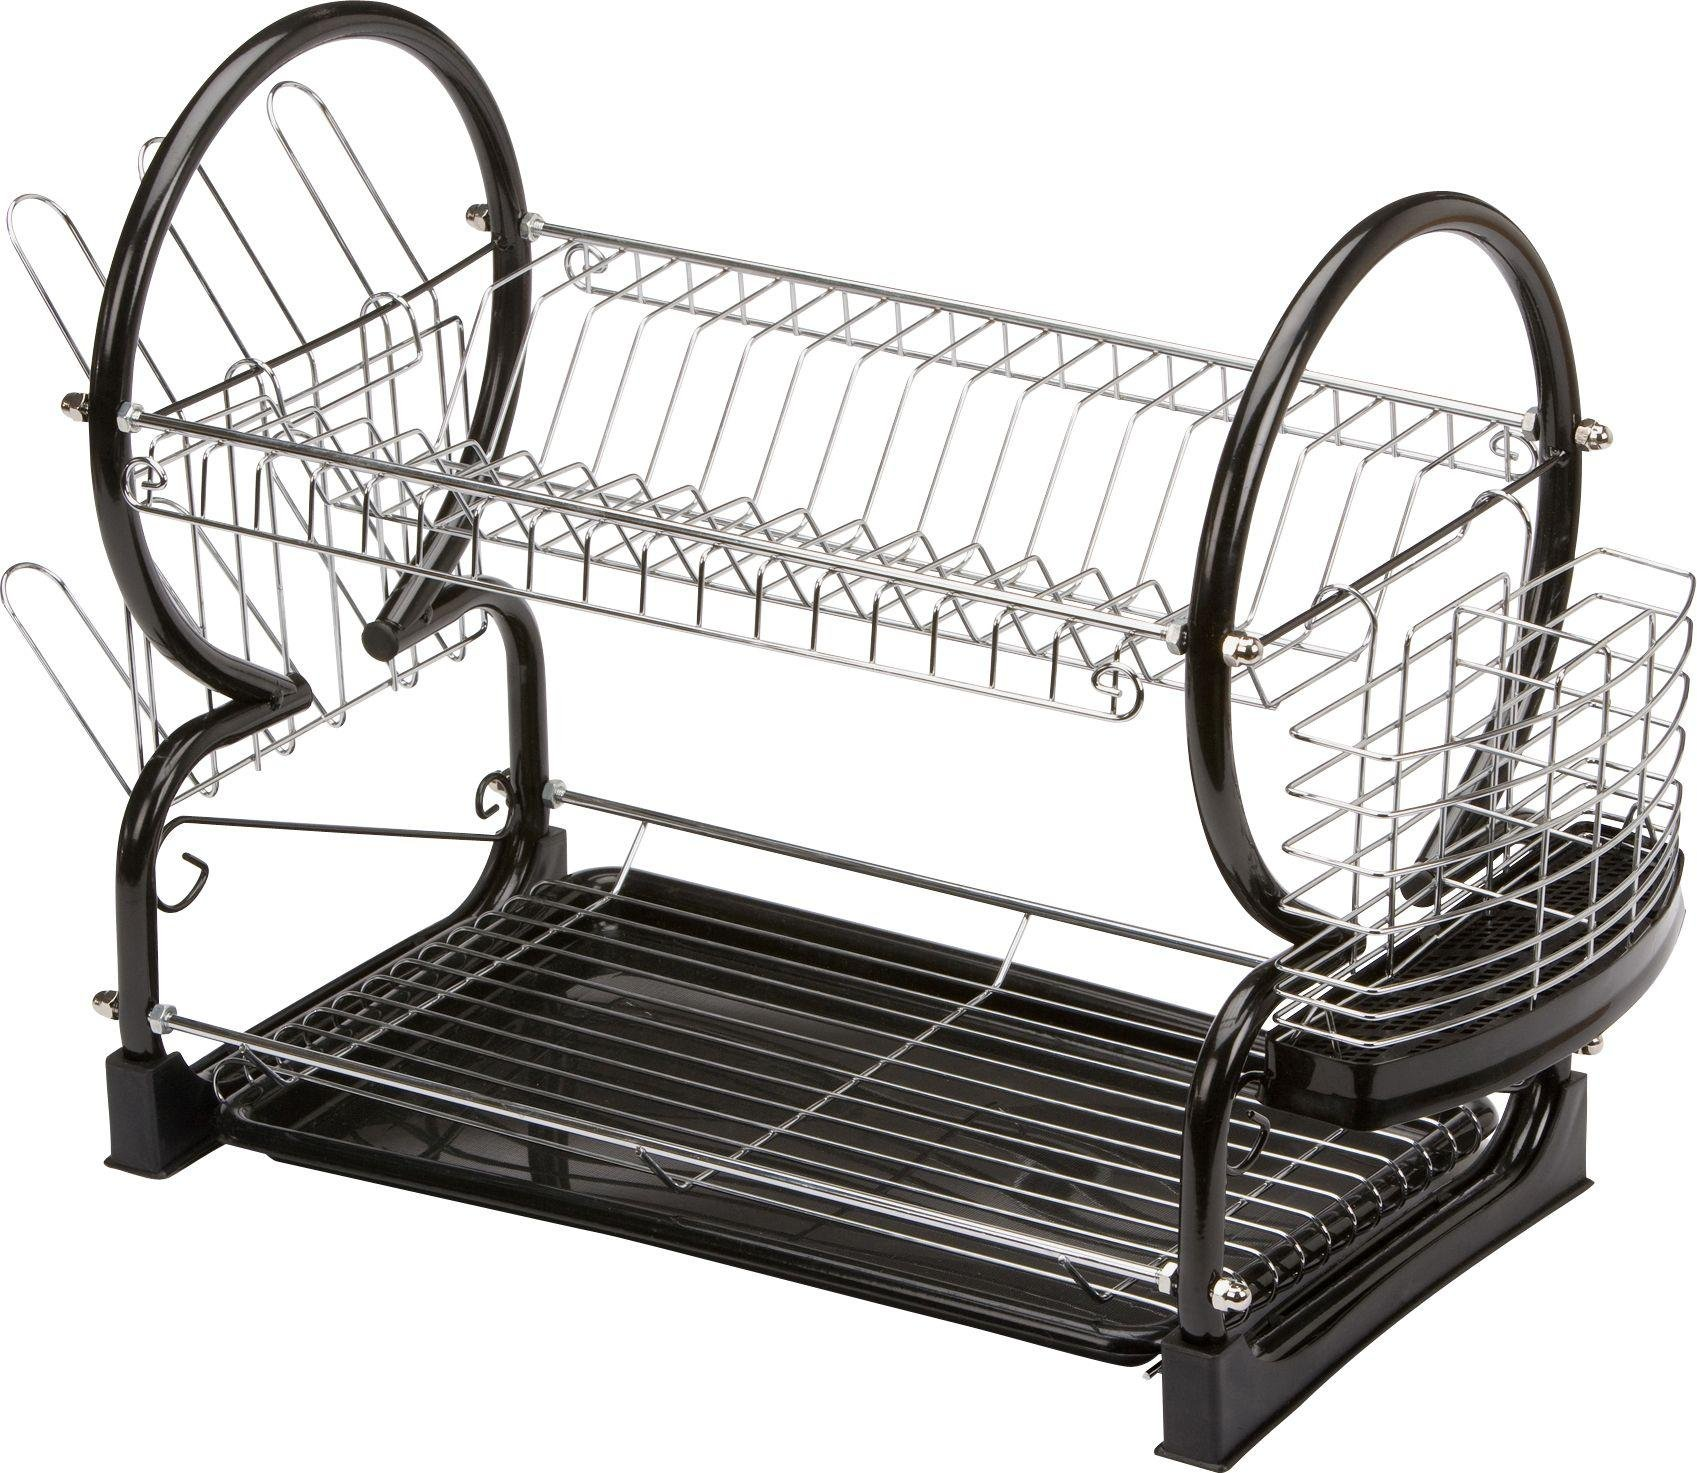 Image of HOME - 2 Tier Dish Rack - Black